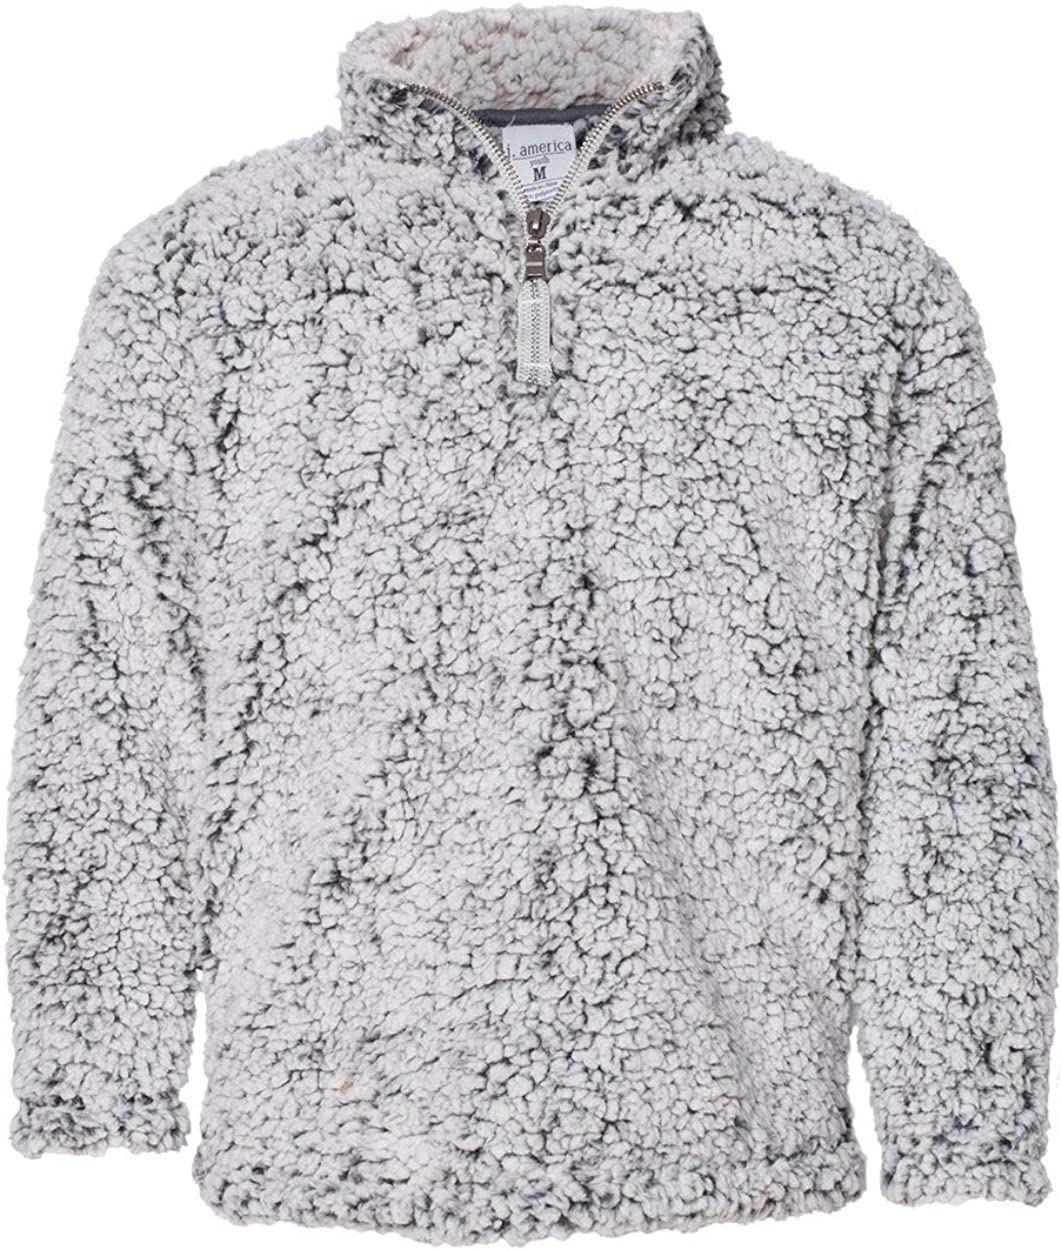 J. America Epic Sherpa Youth Quarter Zip Pullover 8462